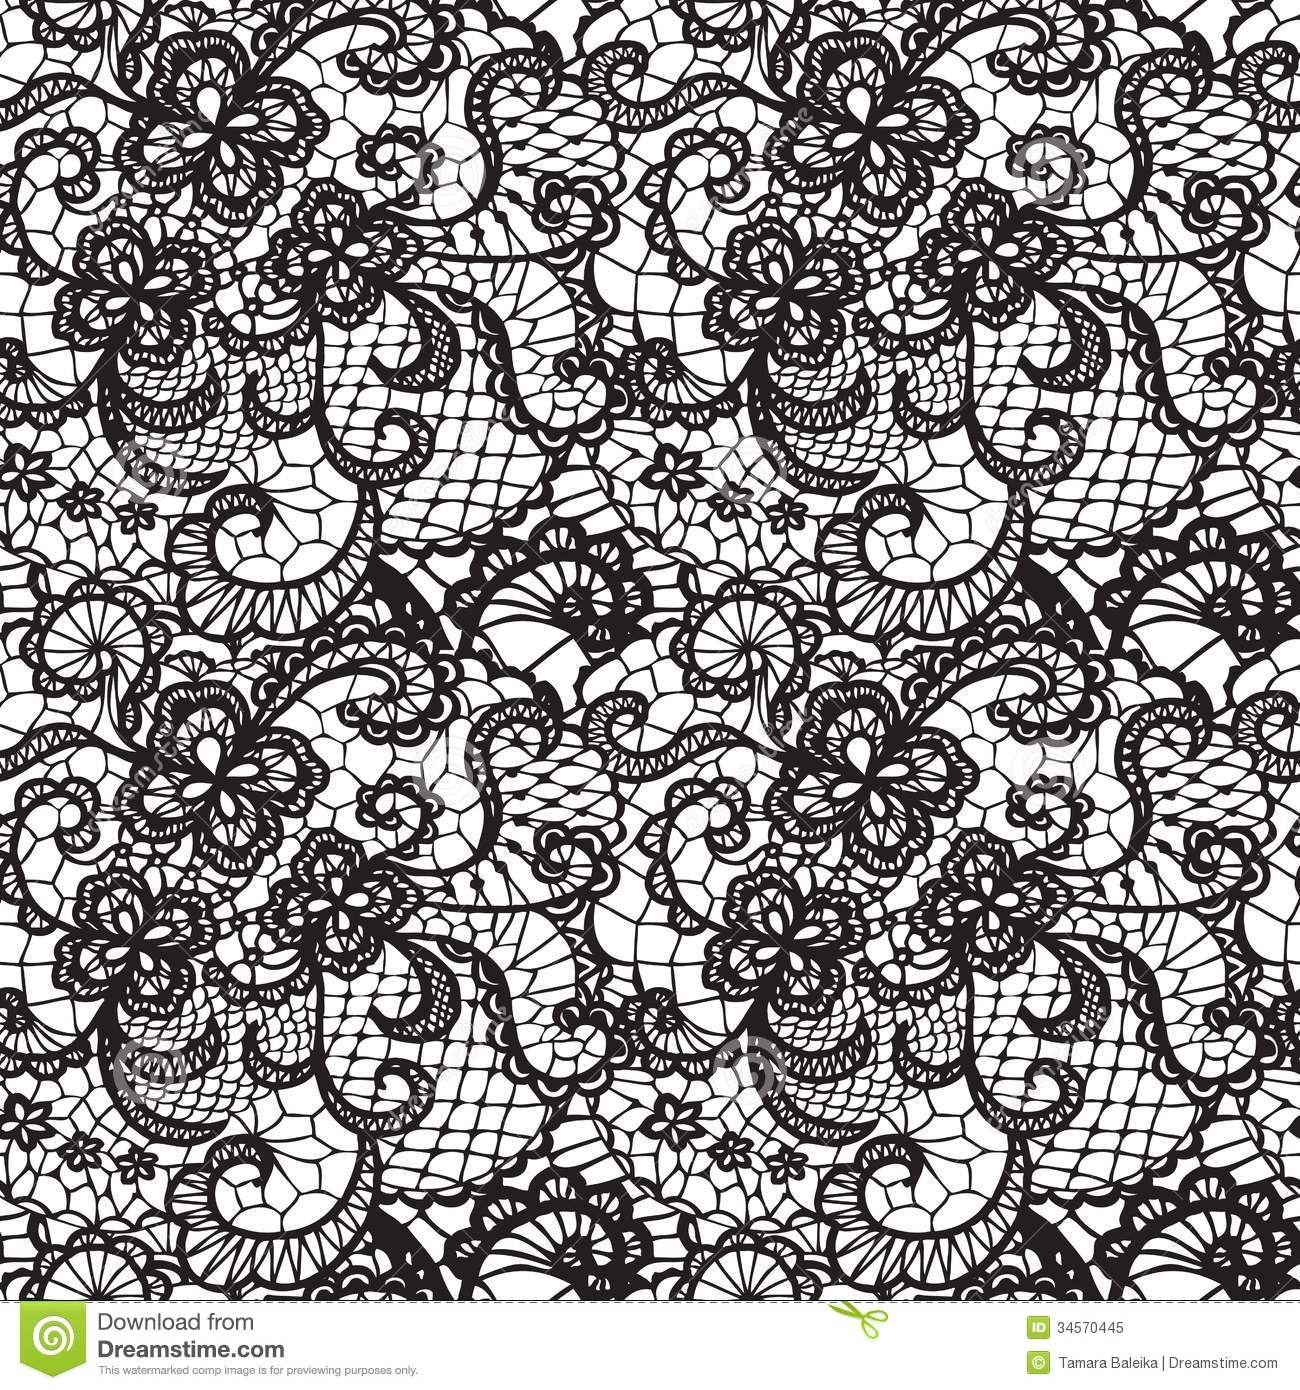 Simple lace patterns clipart clipart freeuse library Lace Pattern Clipart - Clipart Kid clipart freeuse library